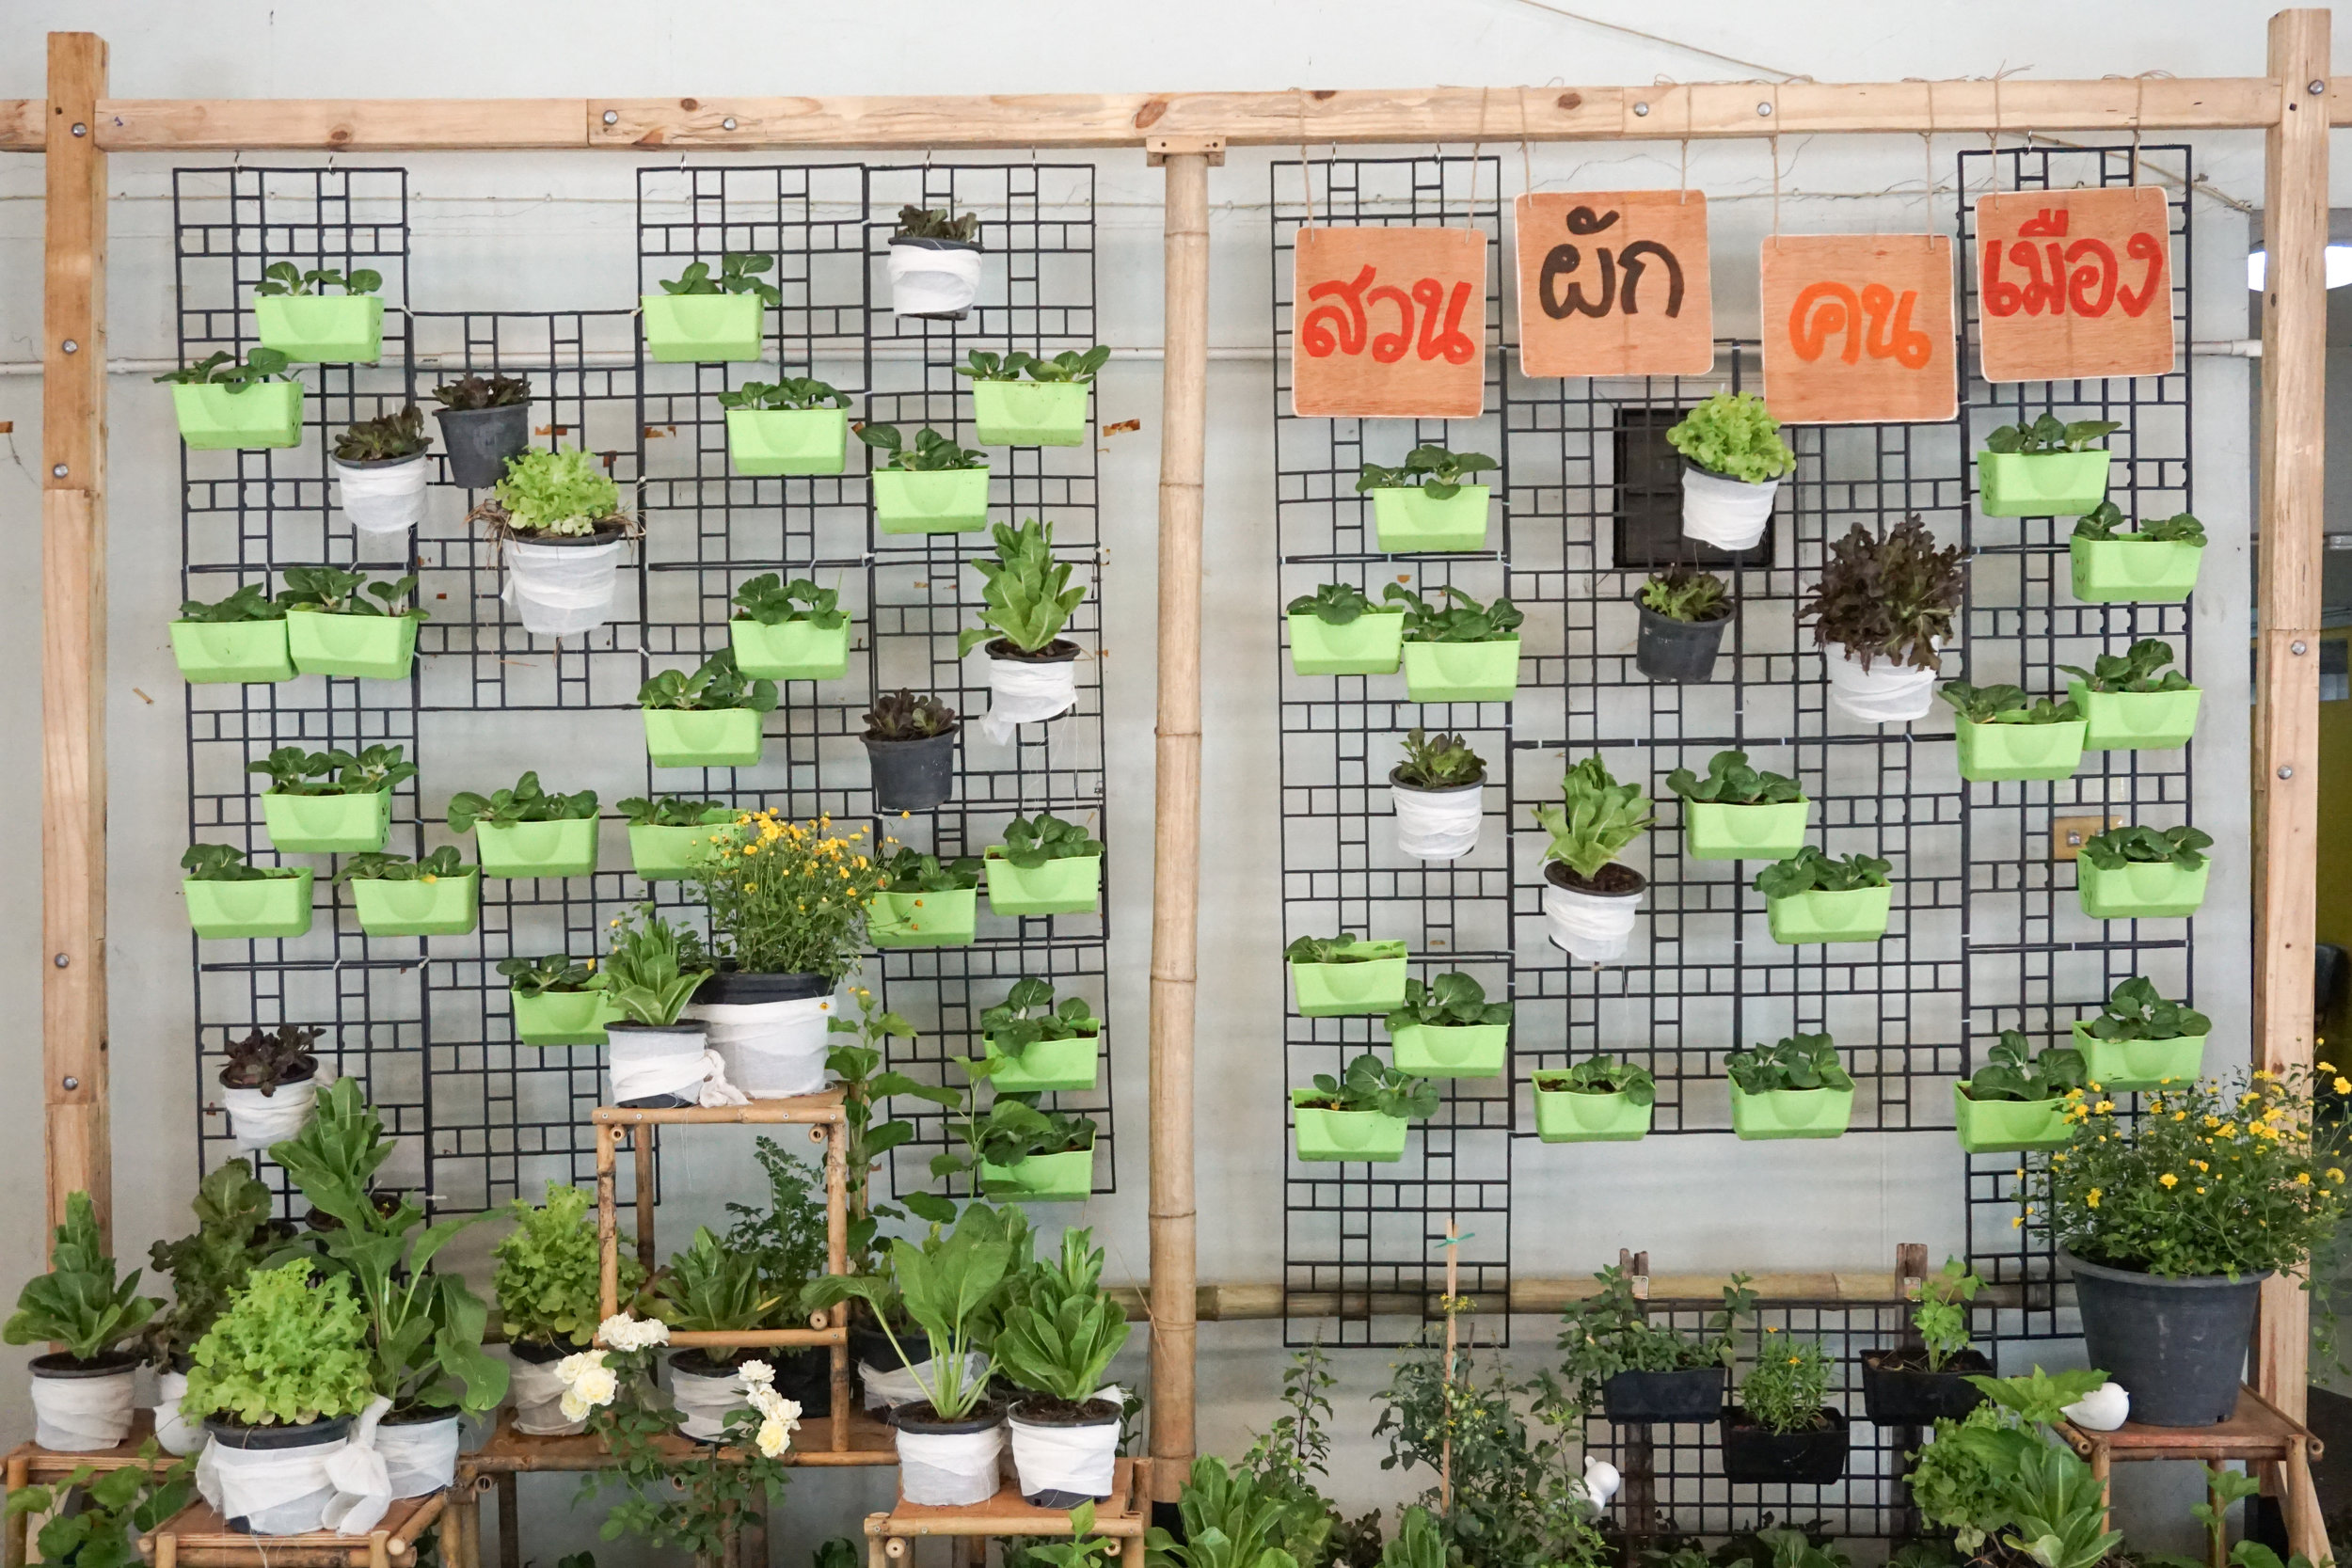 City Farming for a Sustainable City Event: The photo corner with a vertical garden